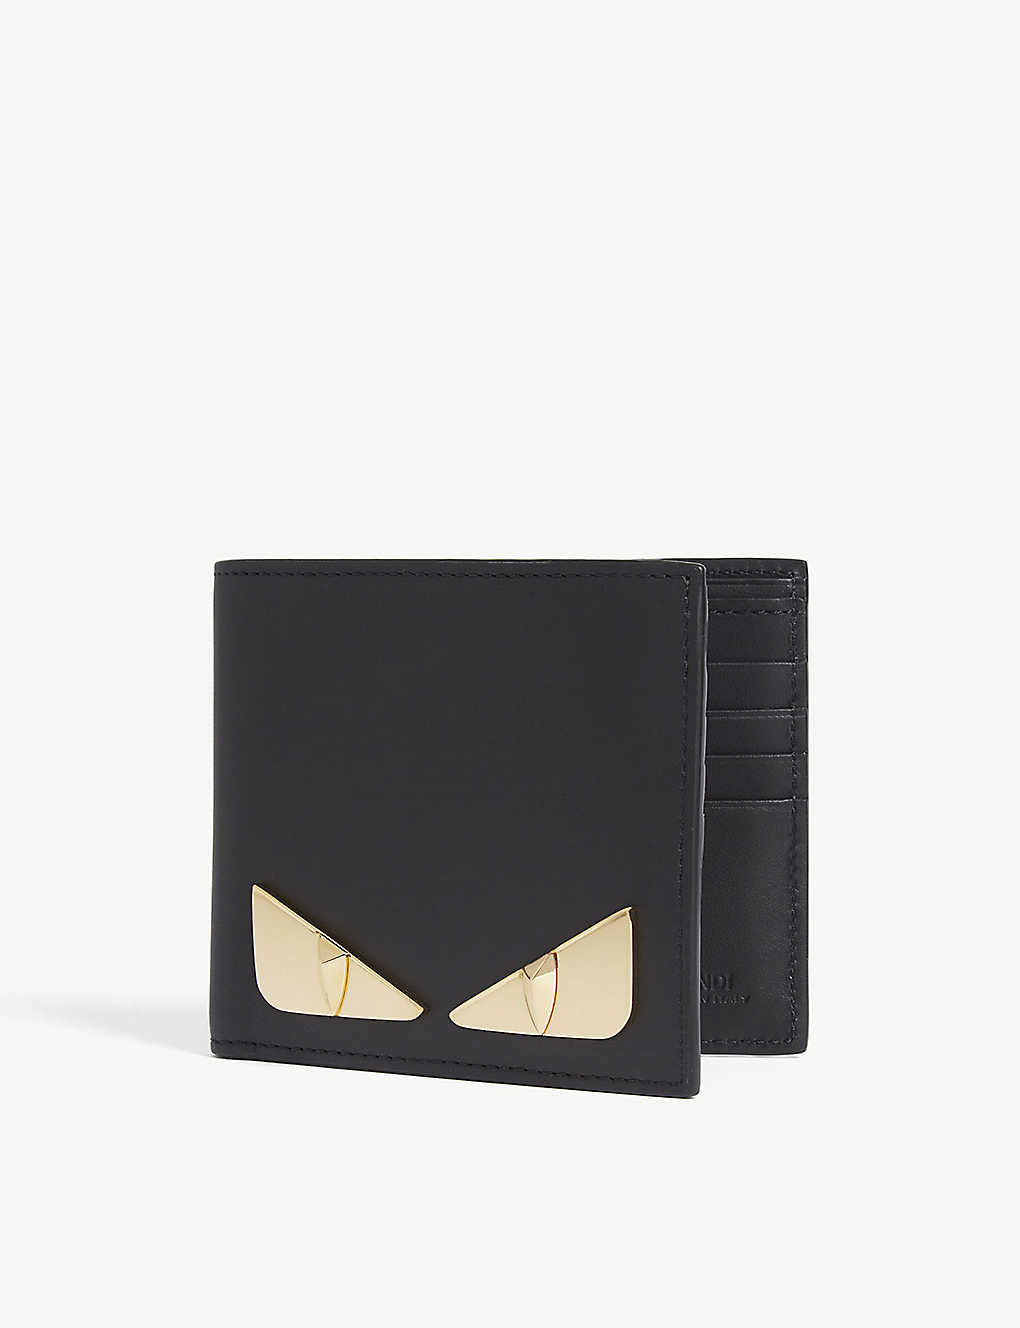 FENDI: Bag Bugs leather billfold wallet